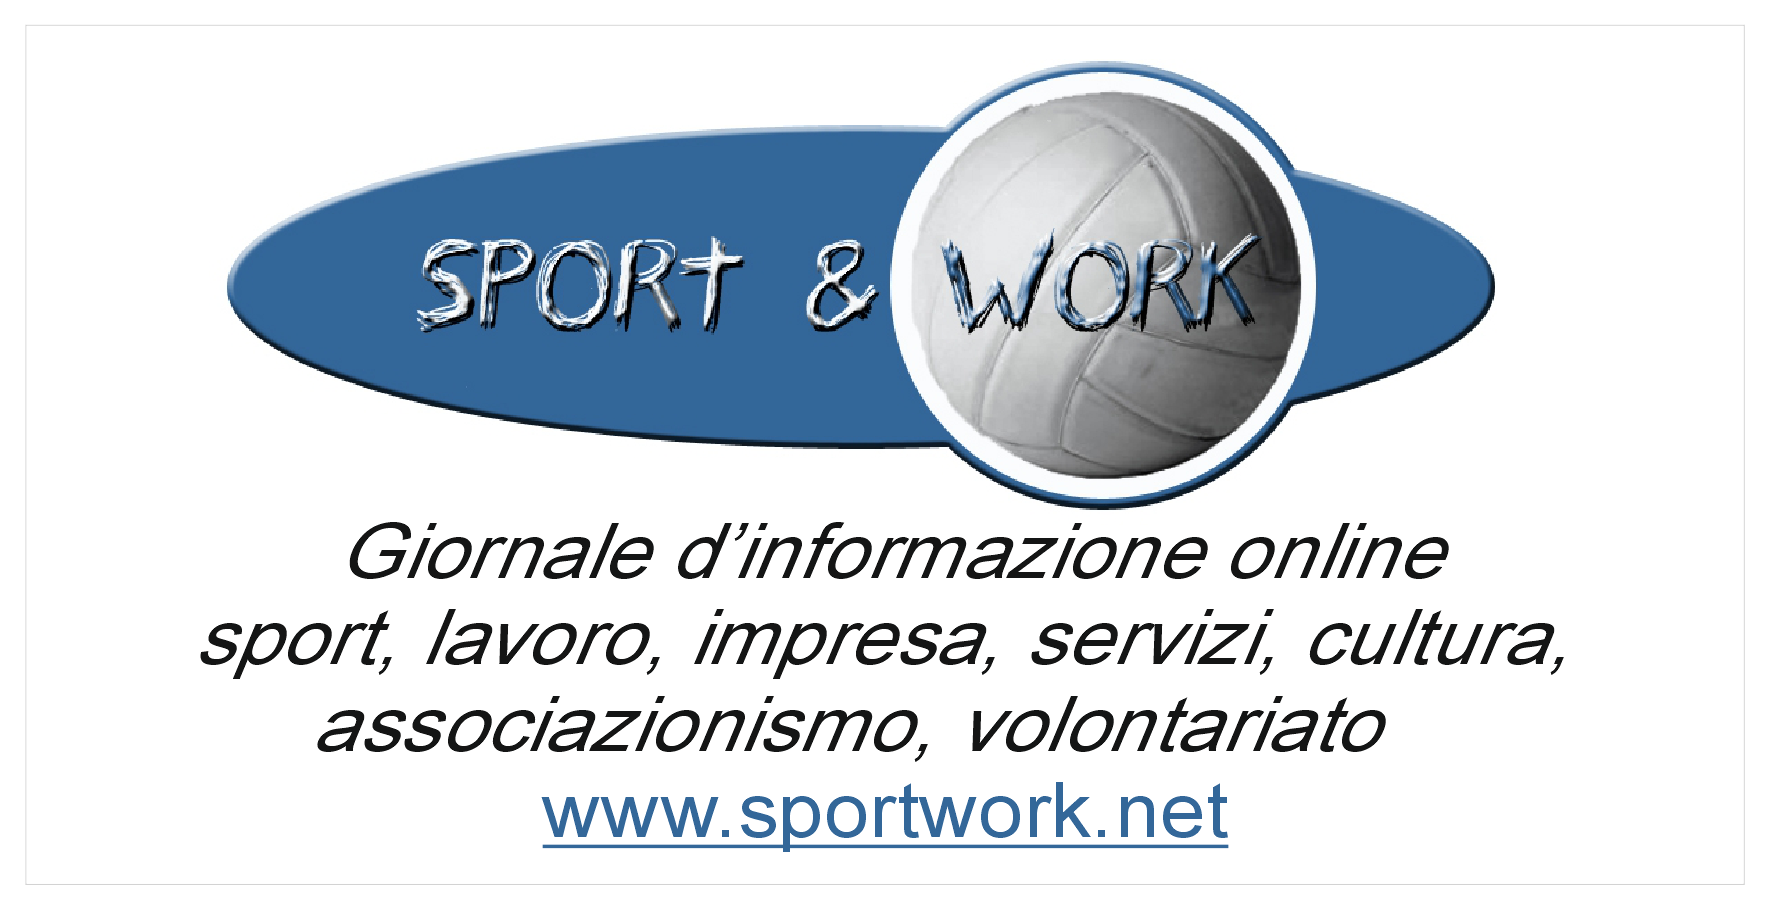 Sport & Work ricerca validi collaboratori commerciali